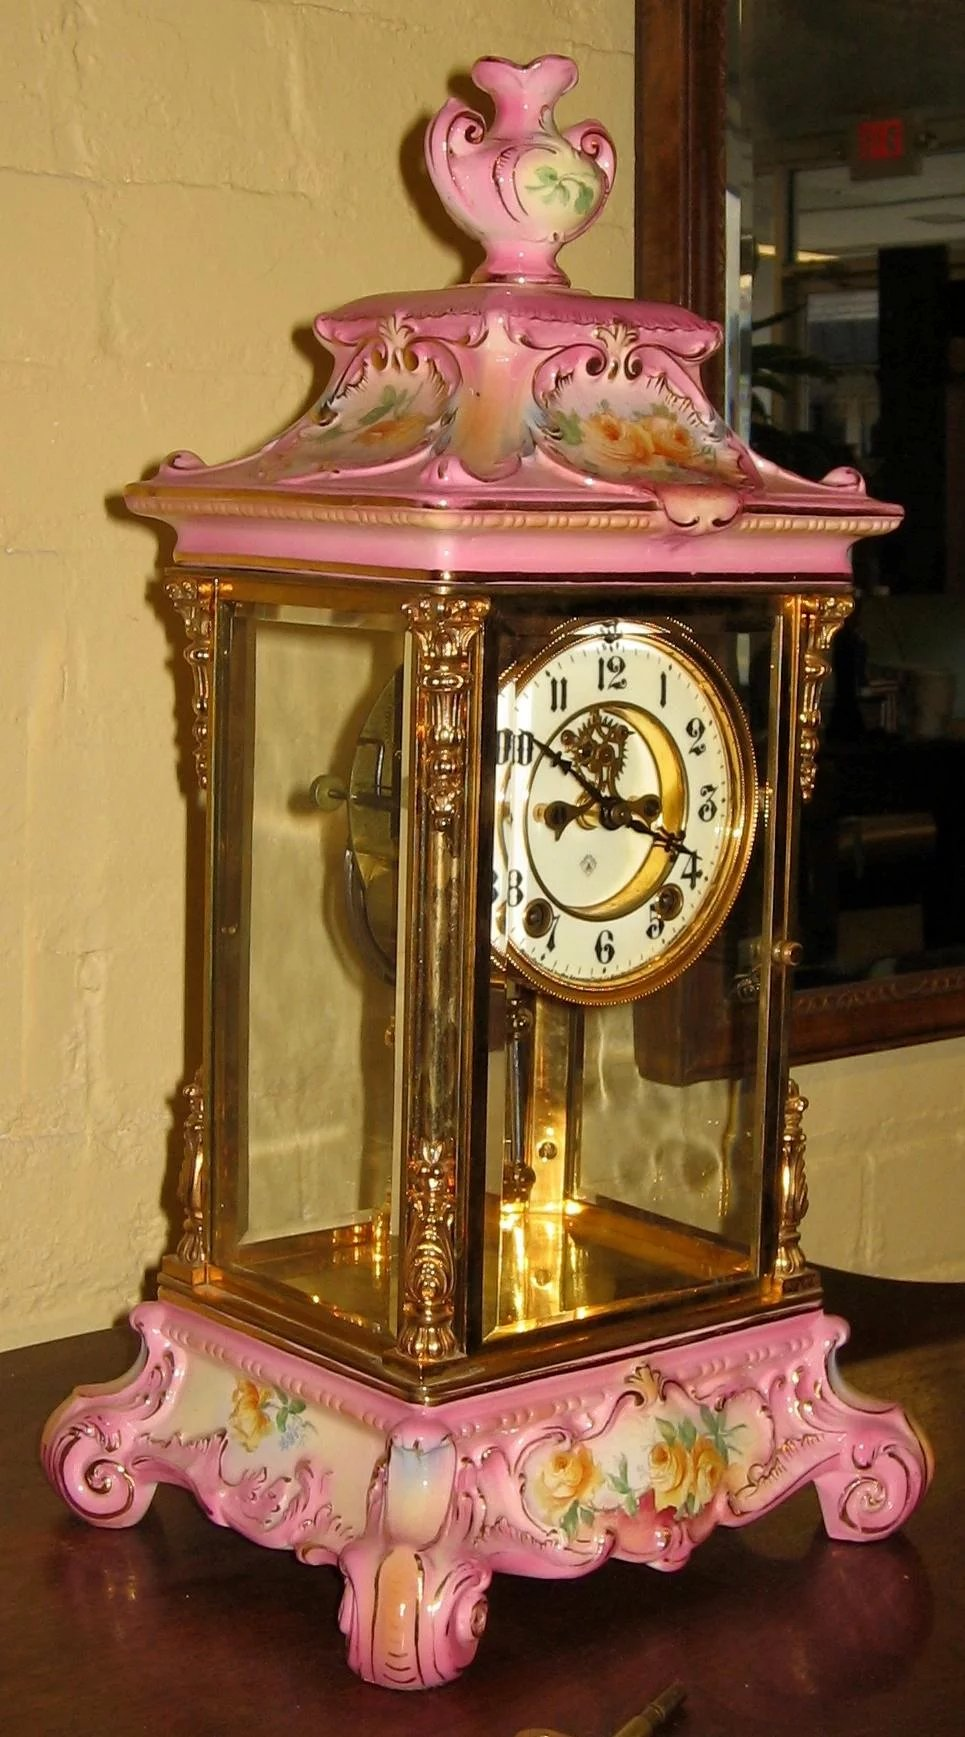 ansonia royal bonn crystal regulator 1 clock cathys. Black Bedroom Furniture Sets. Home Design Ideas